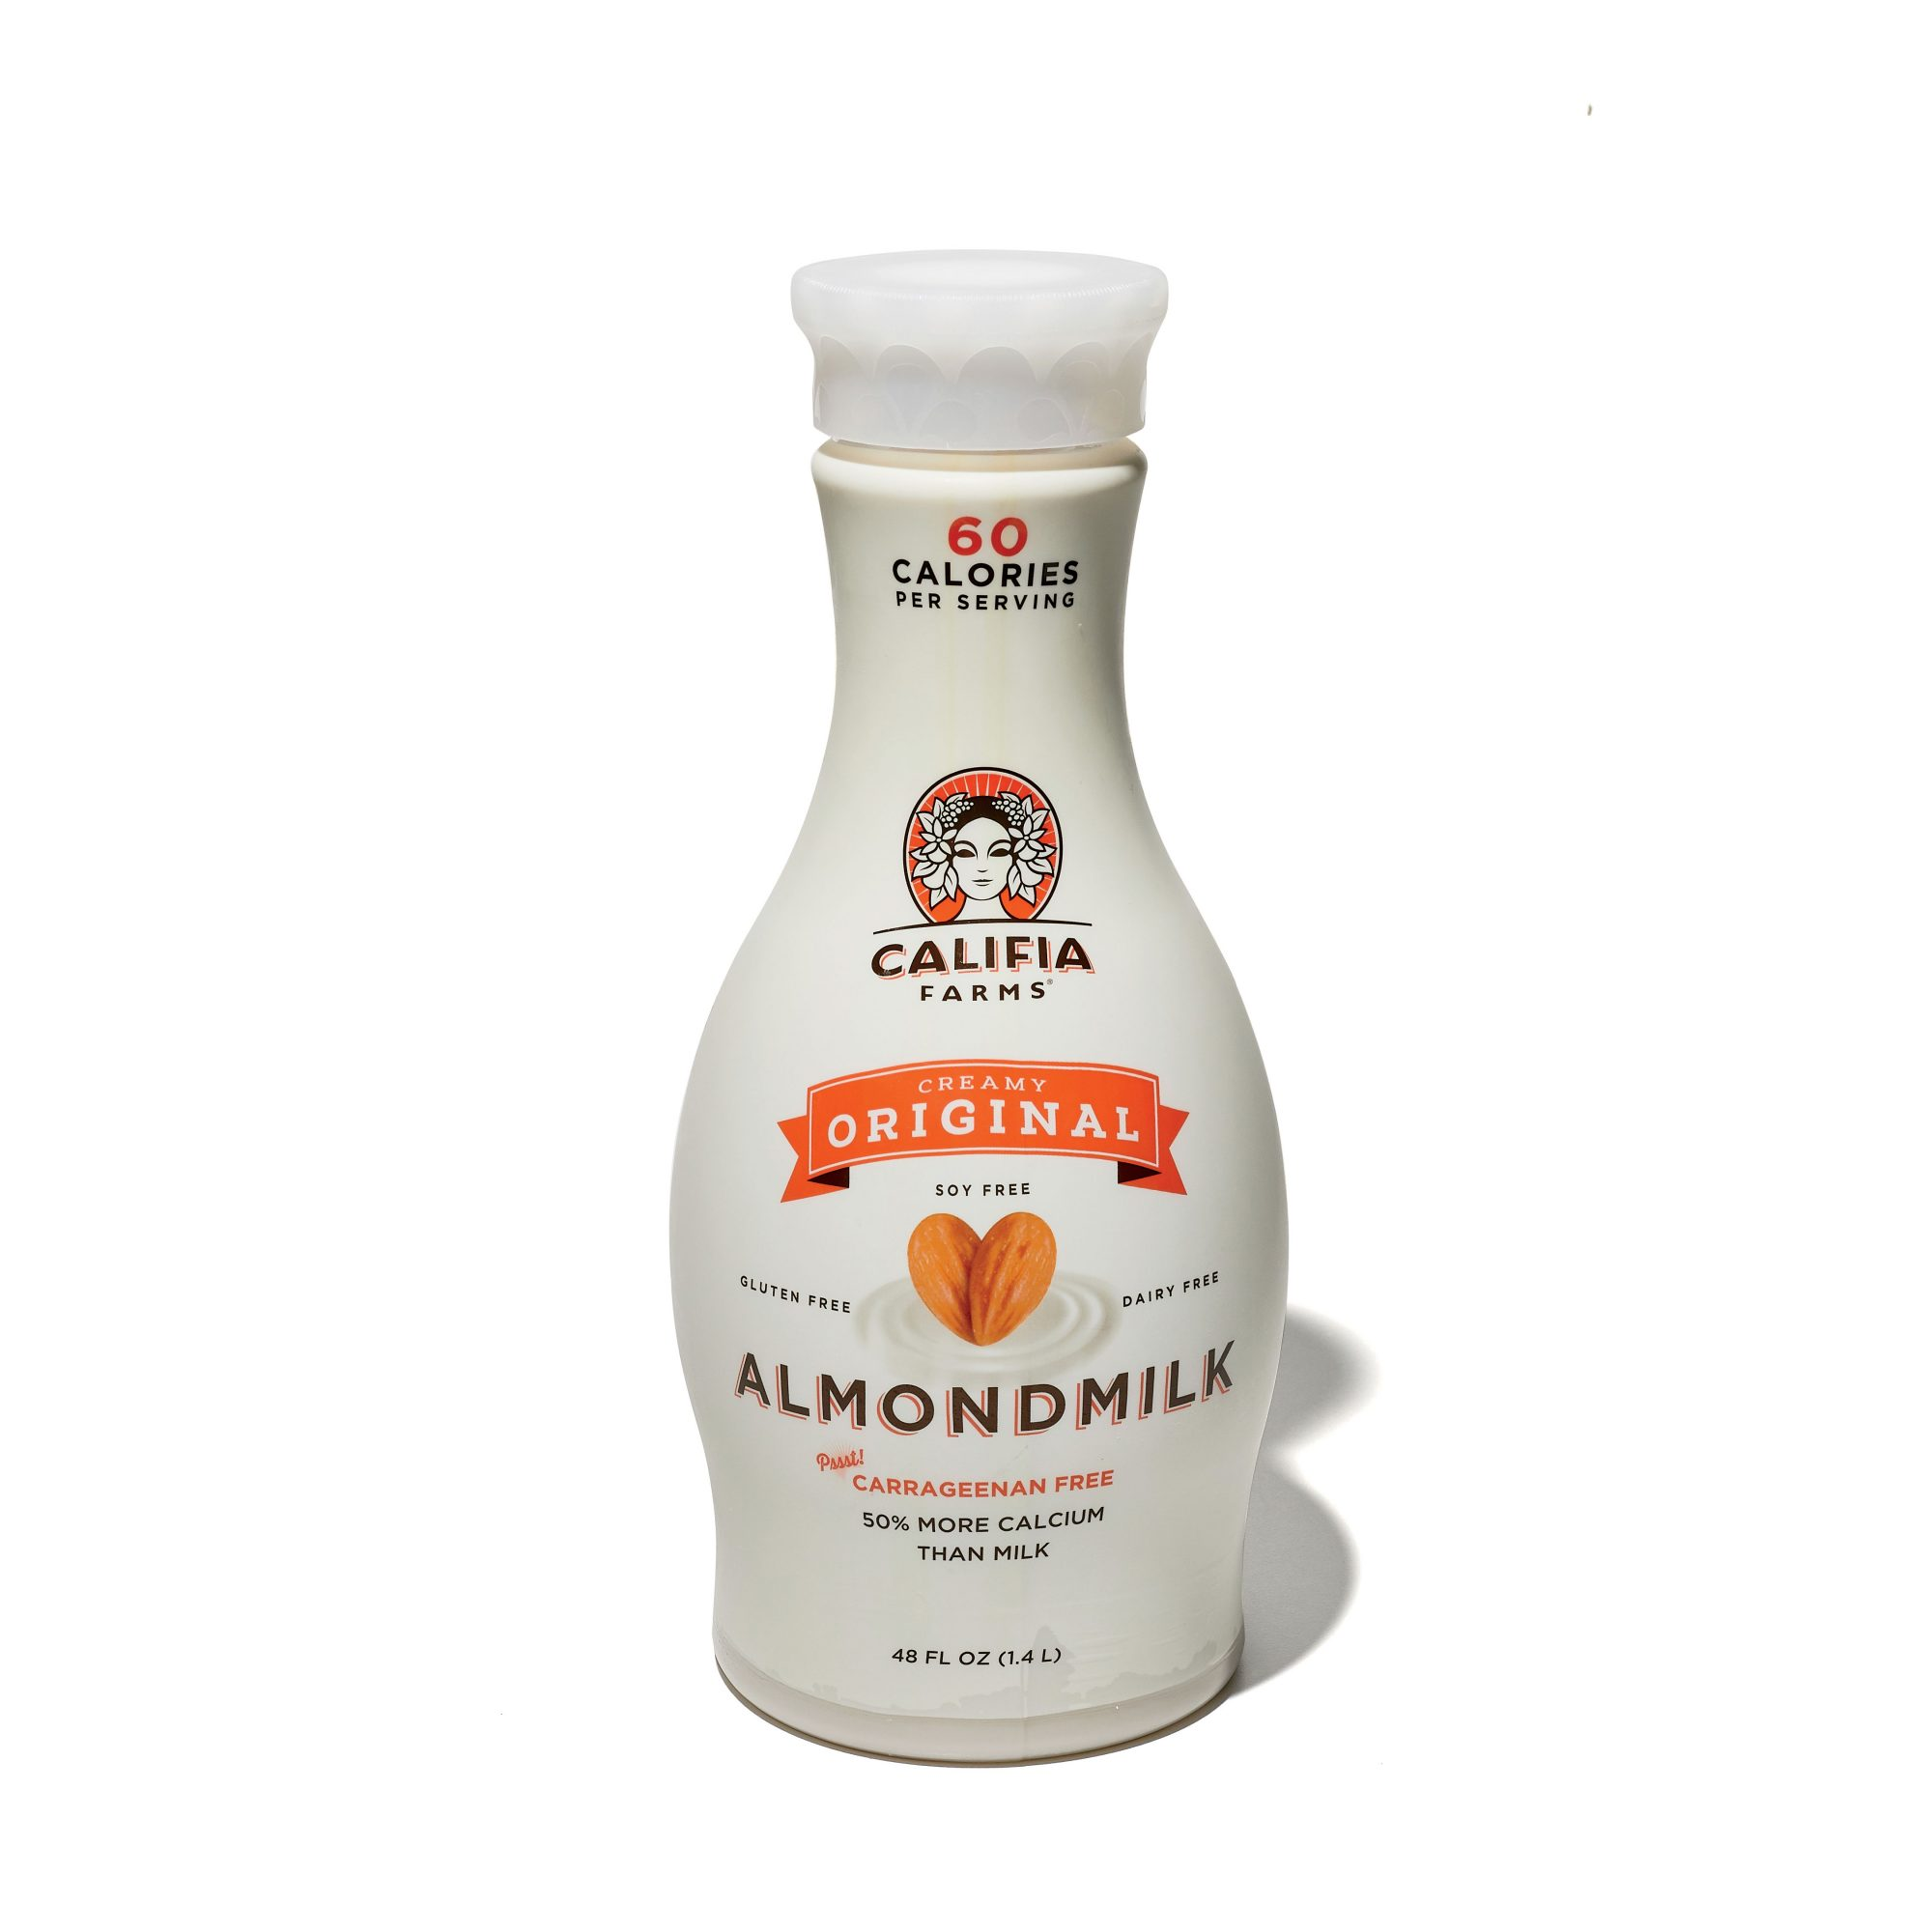 2018 Food Awards: Califia Farms Original AlmondMilk